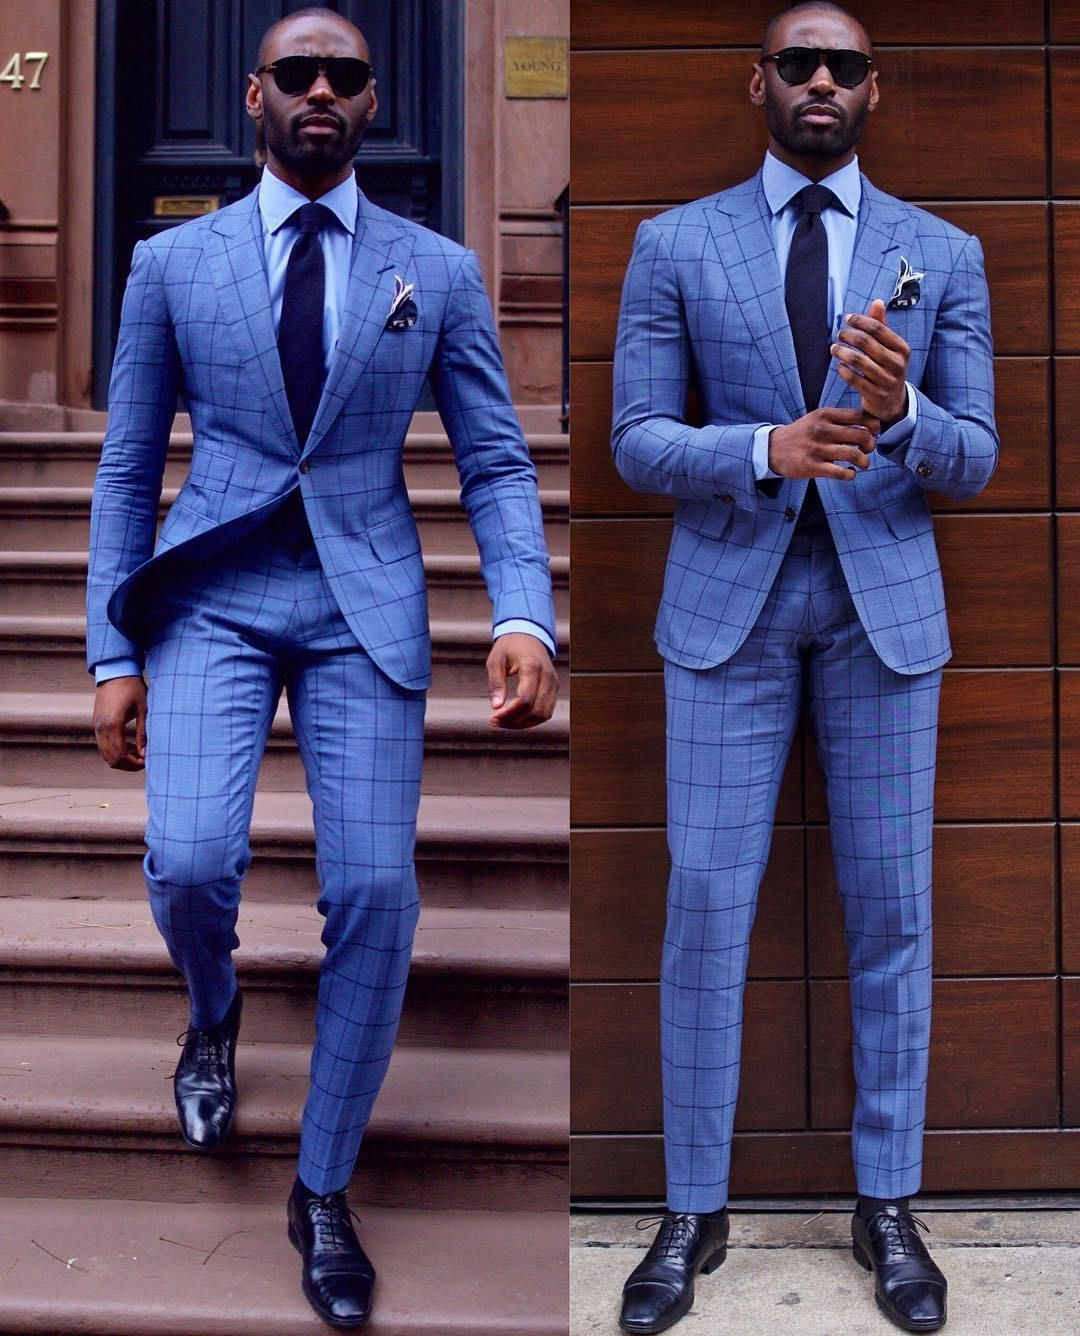 For The Love Of Suits Davidson Frere Habillement Homme Style